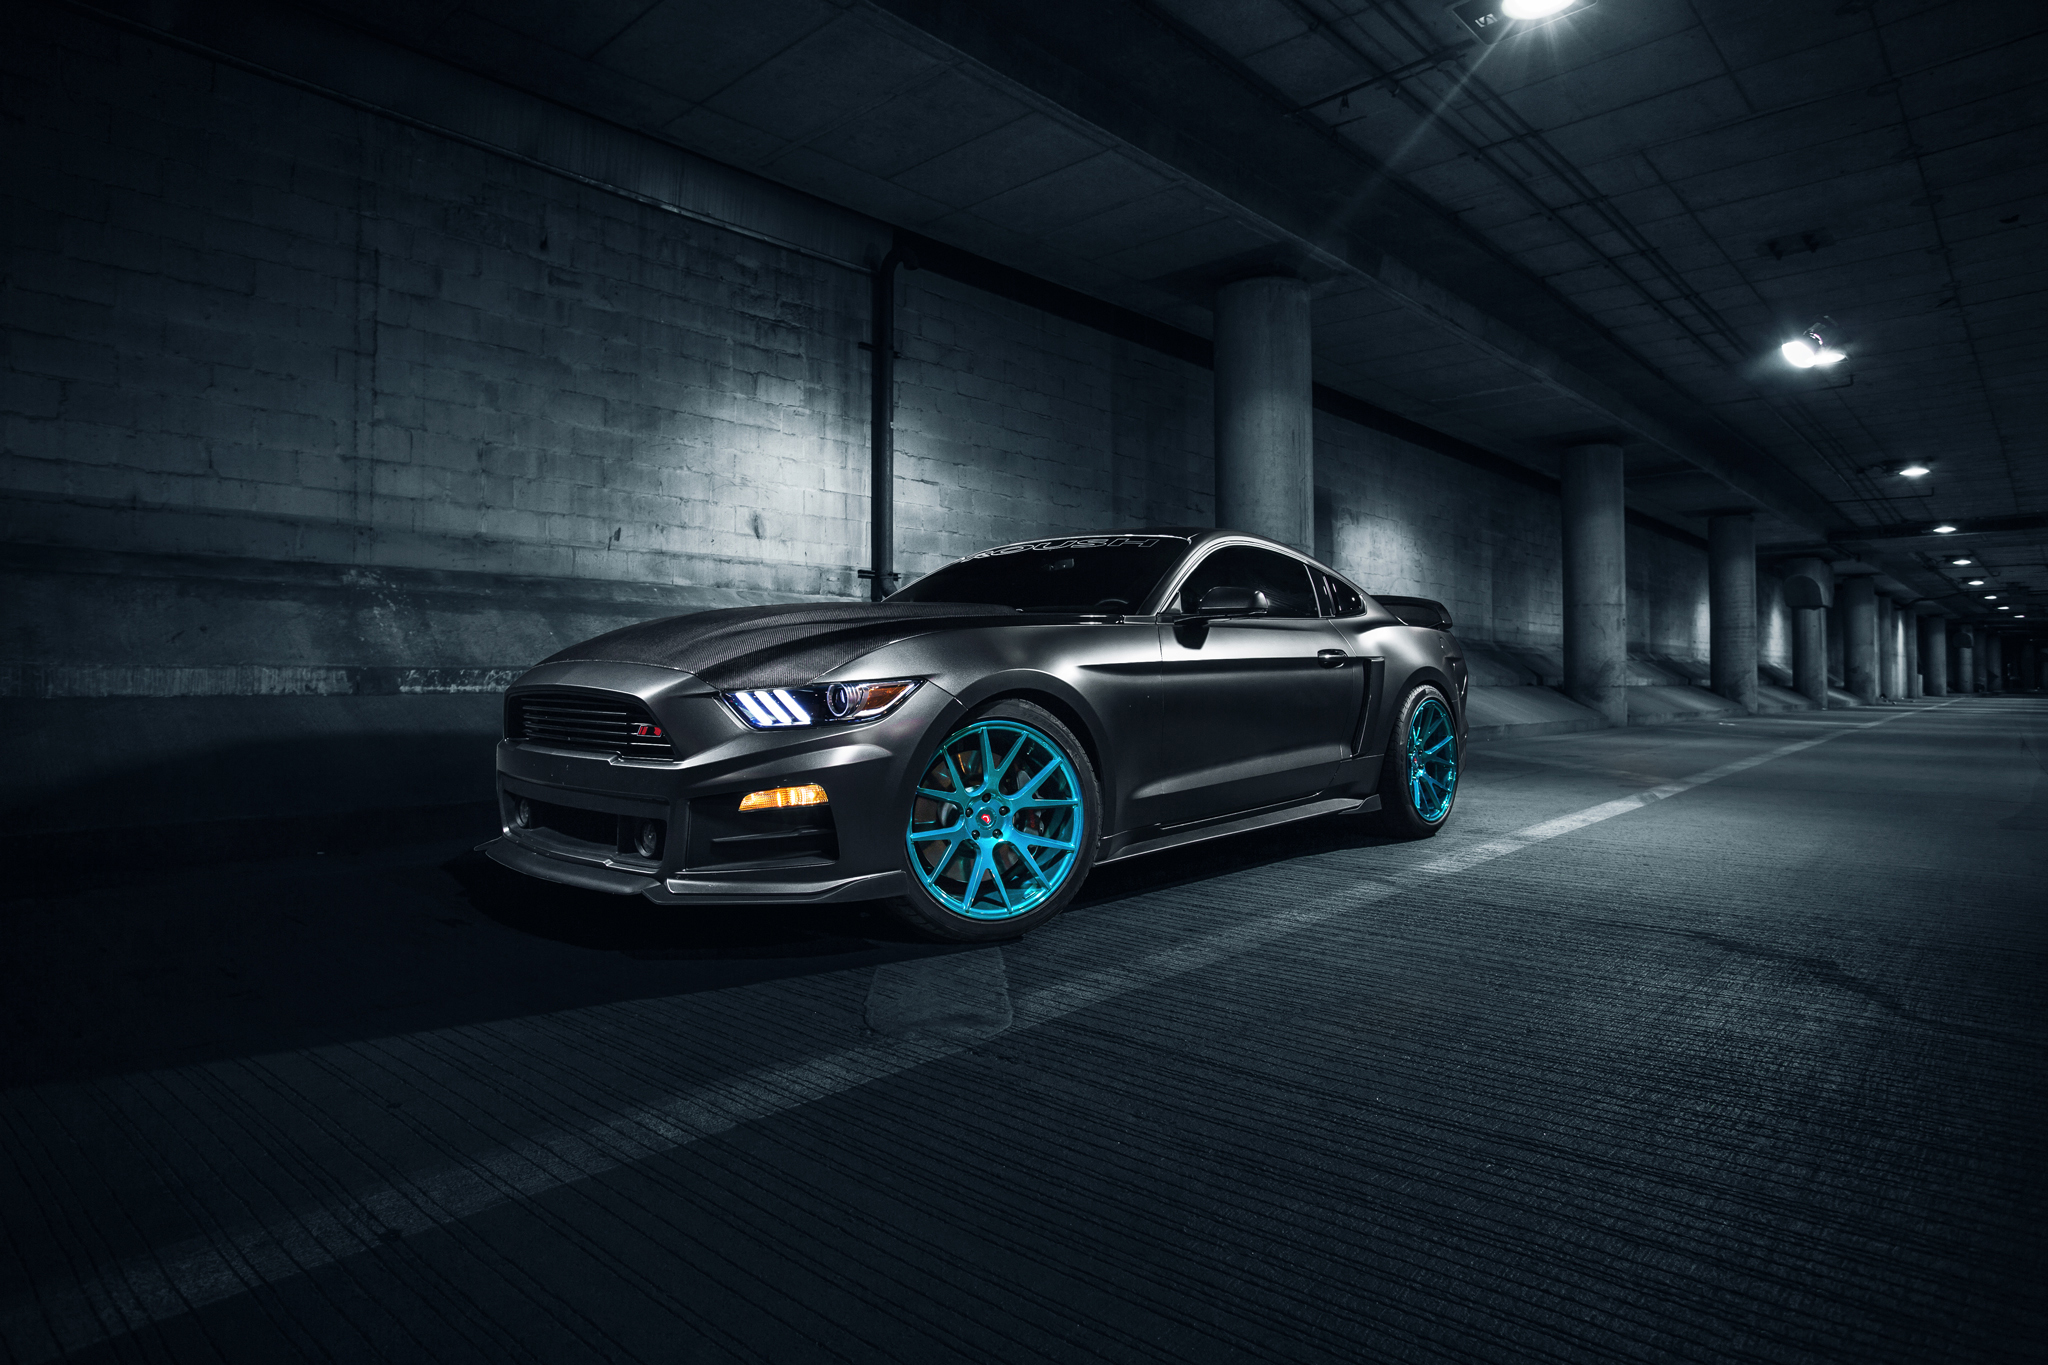 1366x768 Ford Mustang Muscle Car HD 1366x768 Resolution HD ...